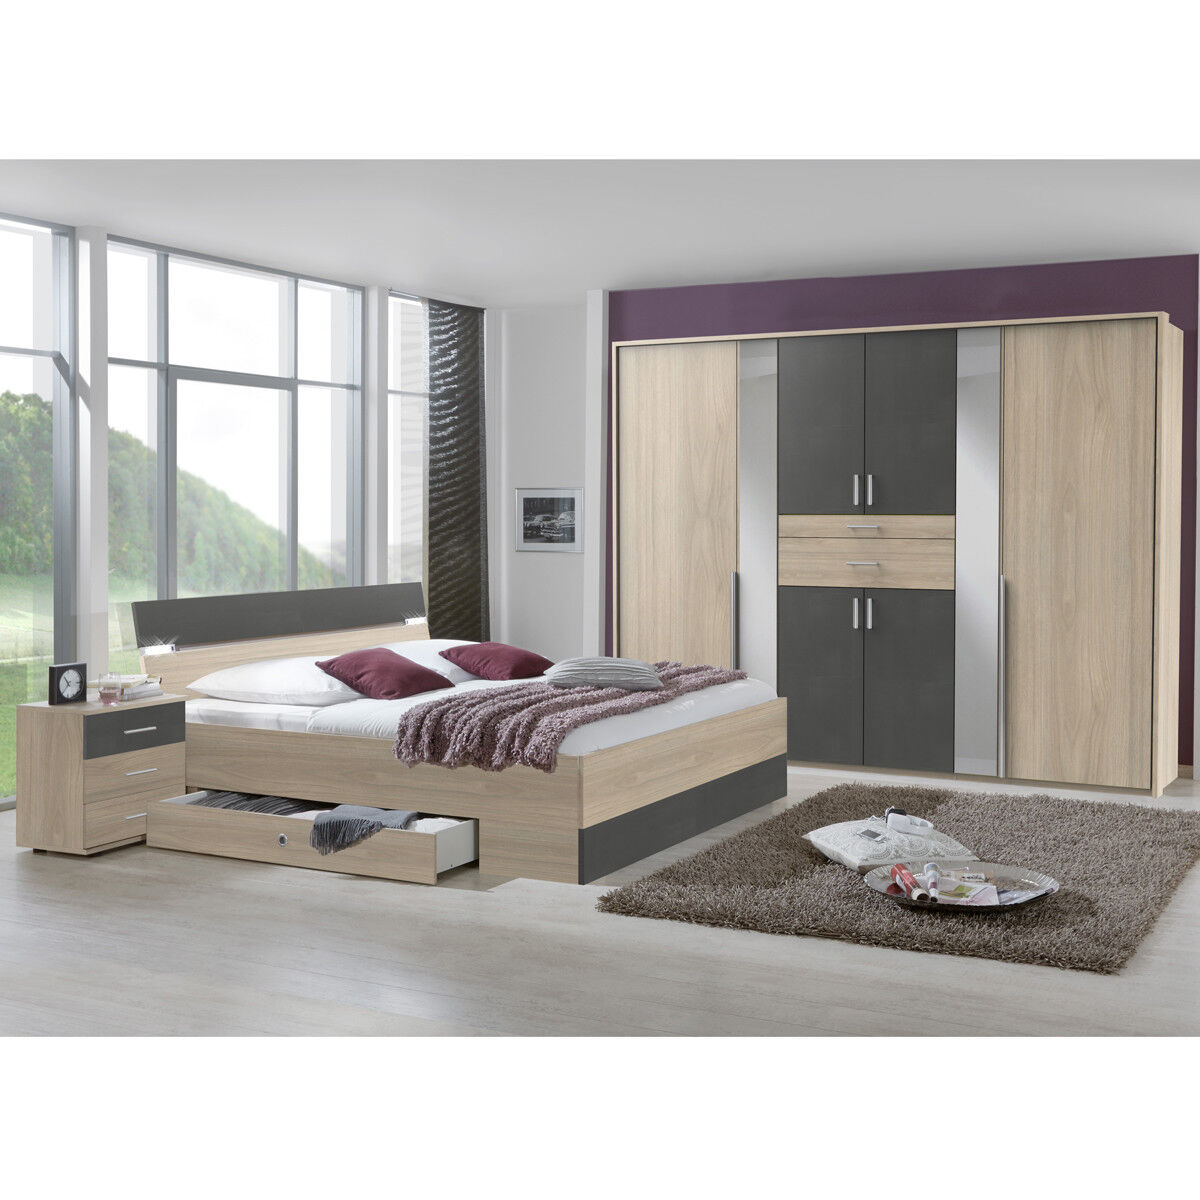 xanten mehr als 200 angebote fotos preise. Black Bedroom Furniture Sets. Home Design Ideas